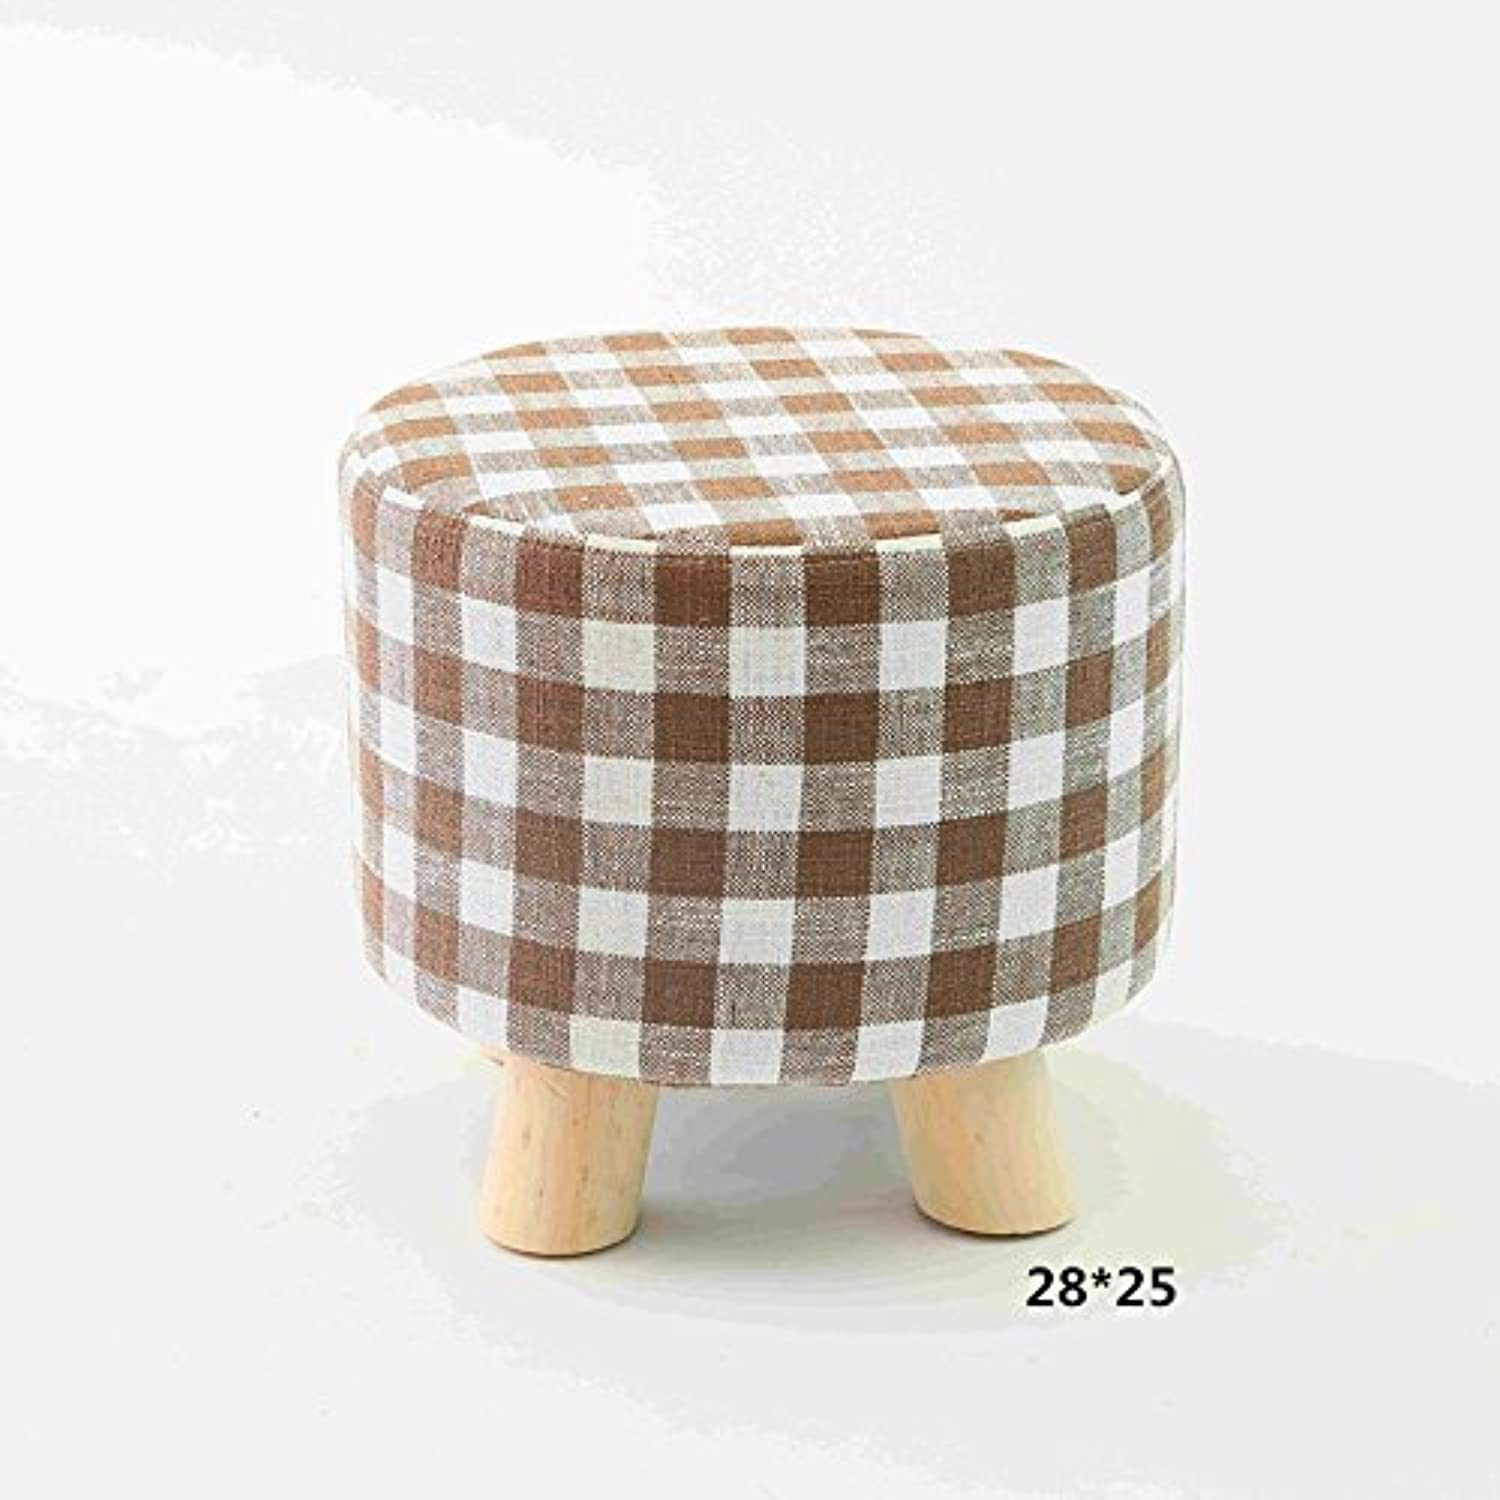 Dana Carrie Stool Small stool Stylish Creative Small Benches Home stool Solid Wood Round stool Sofa, Checkered Round stool